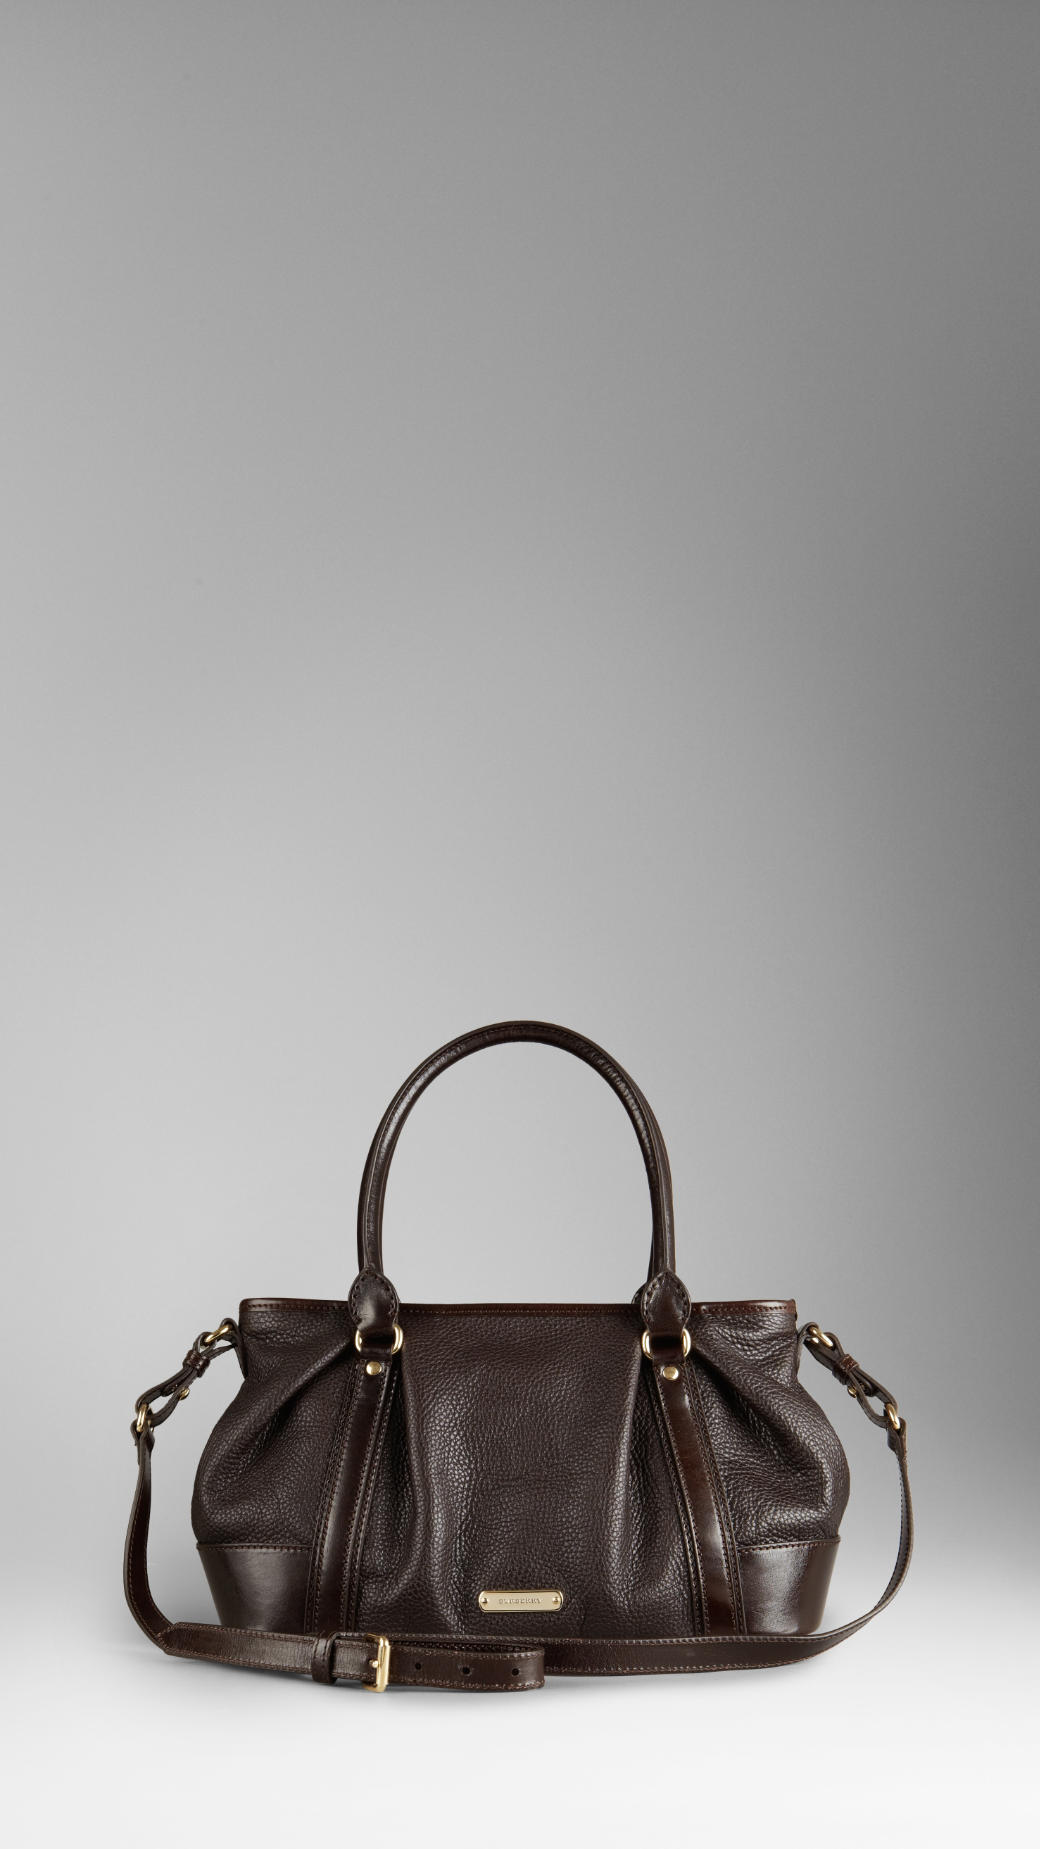 46c82c6df697 Burberry Medium Leather Bowling Bag in Brown - Lyst